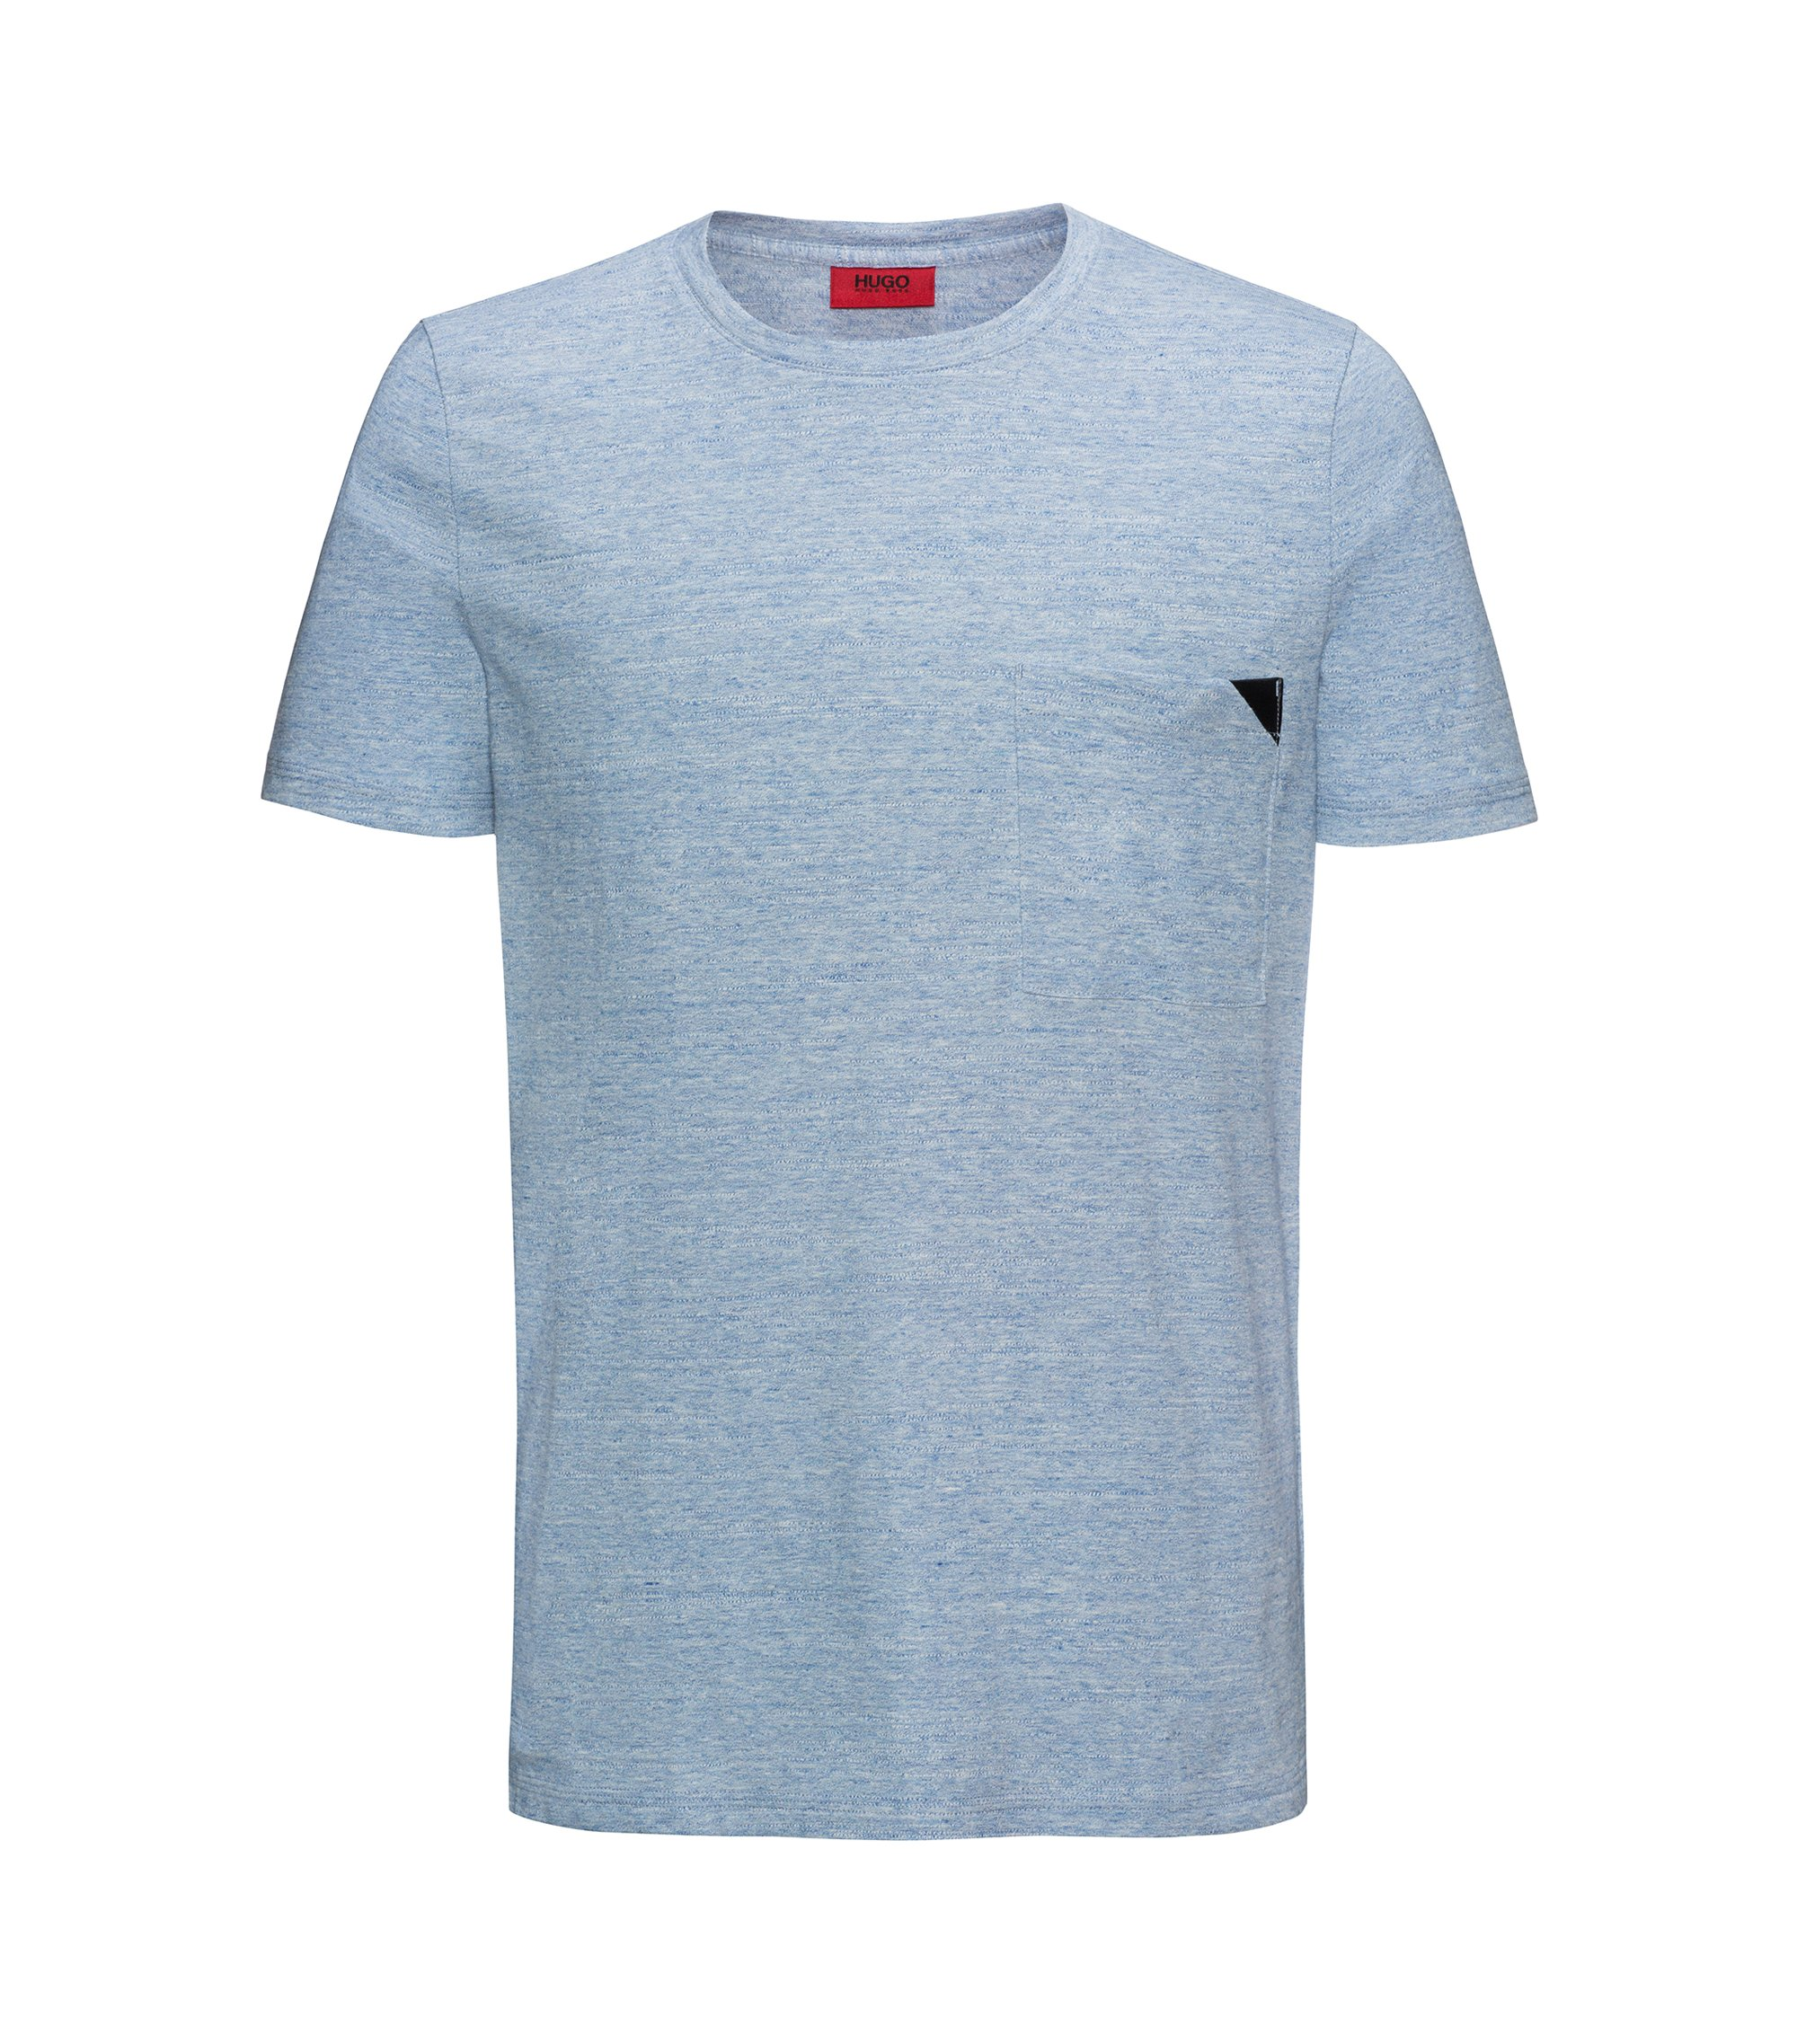 Short-sleeved T-shirt in mélange cotton, Light Blue